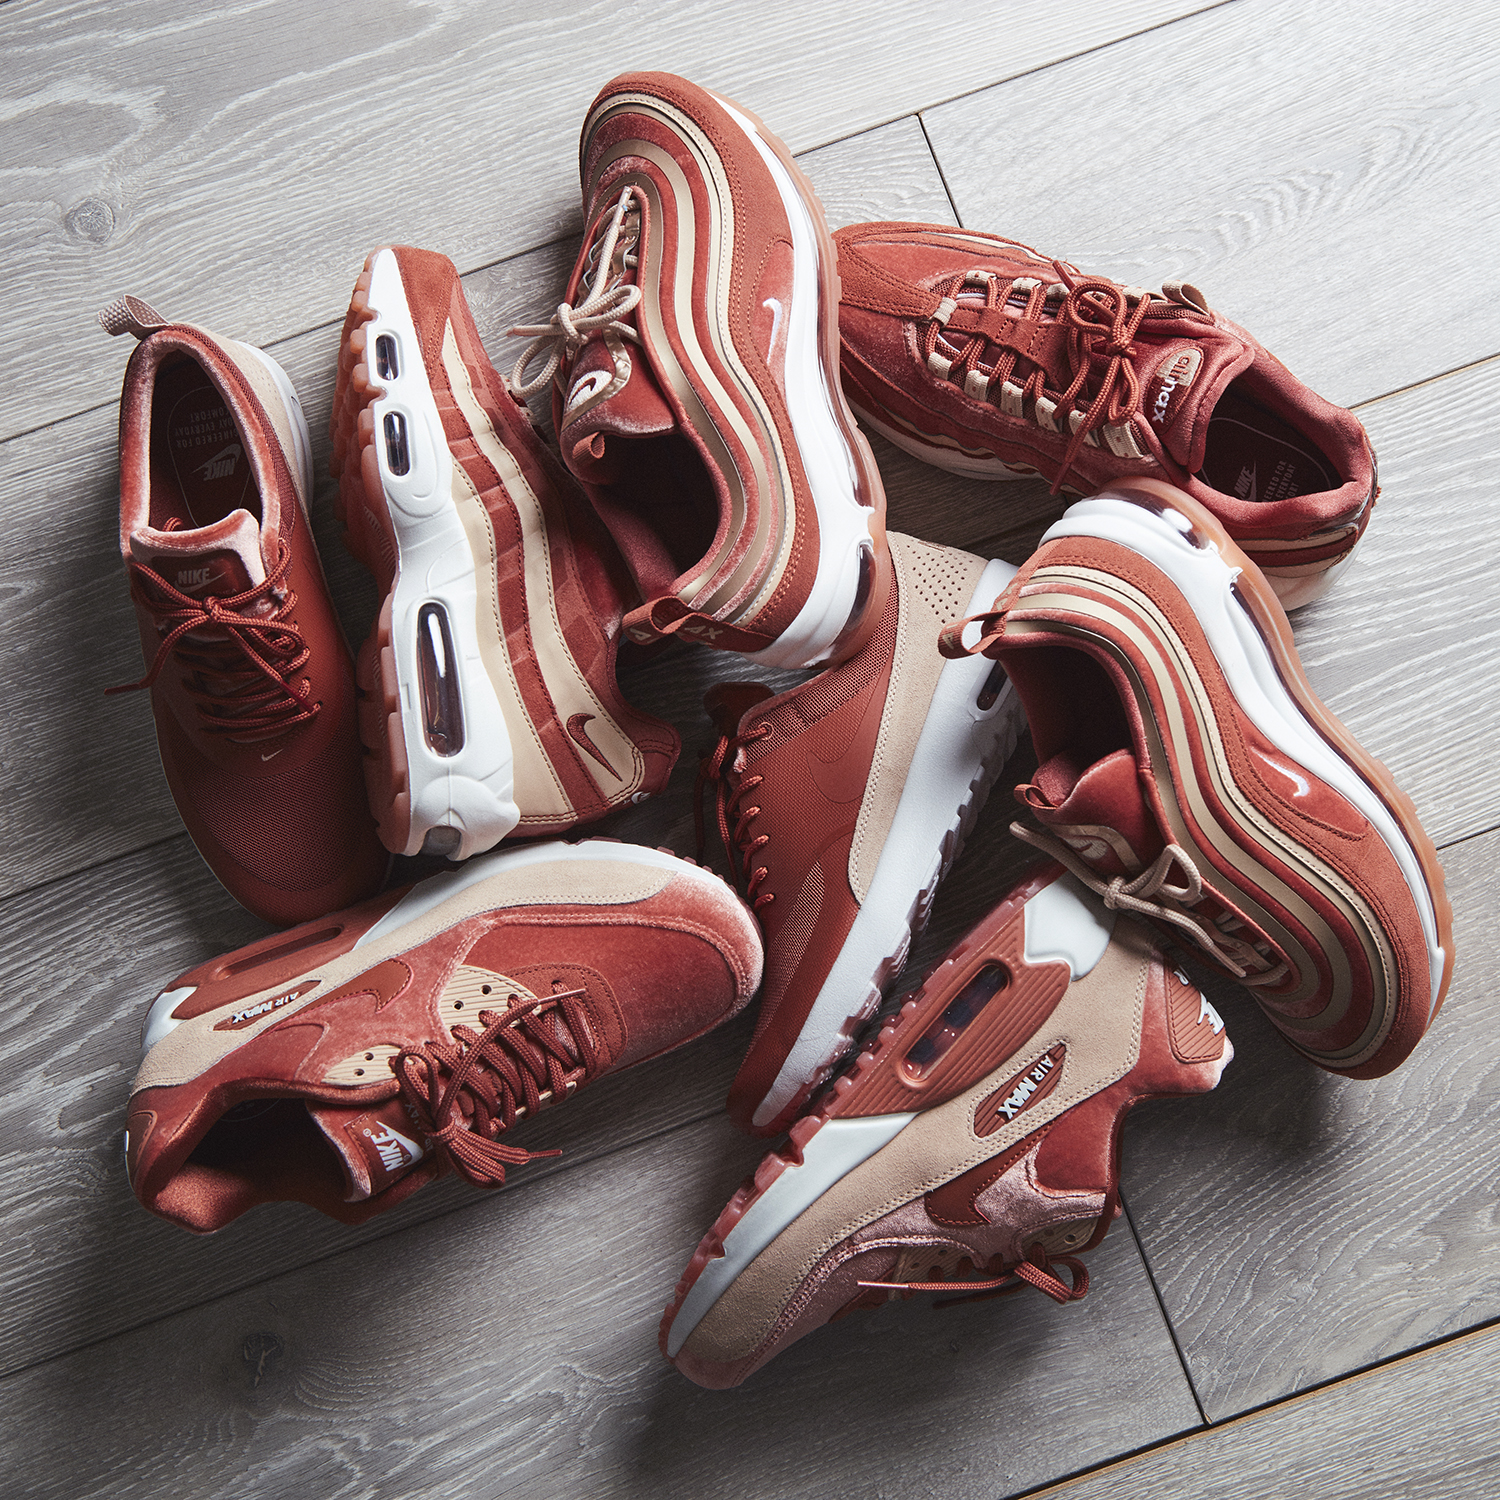 ad44380eaf The latest Nike Air Everywhere pack features the OG Air Max 97, Air Max 95,  Air Max 90 and Air Max Thea; each pair constructed with lightweight textile  ...